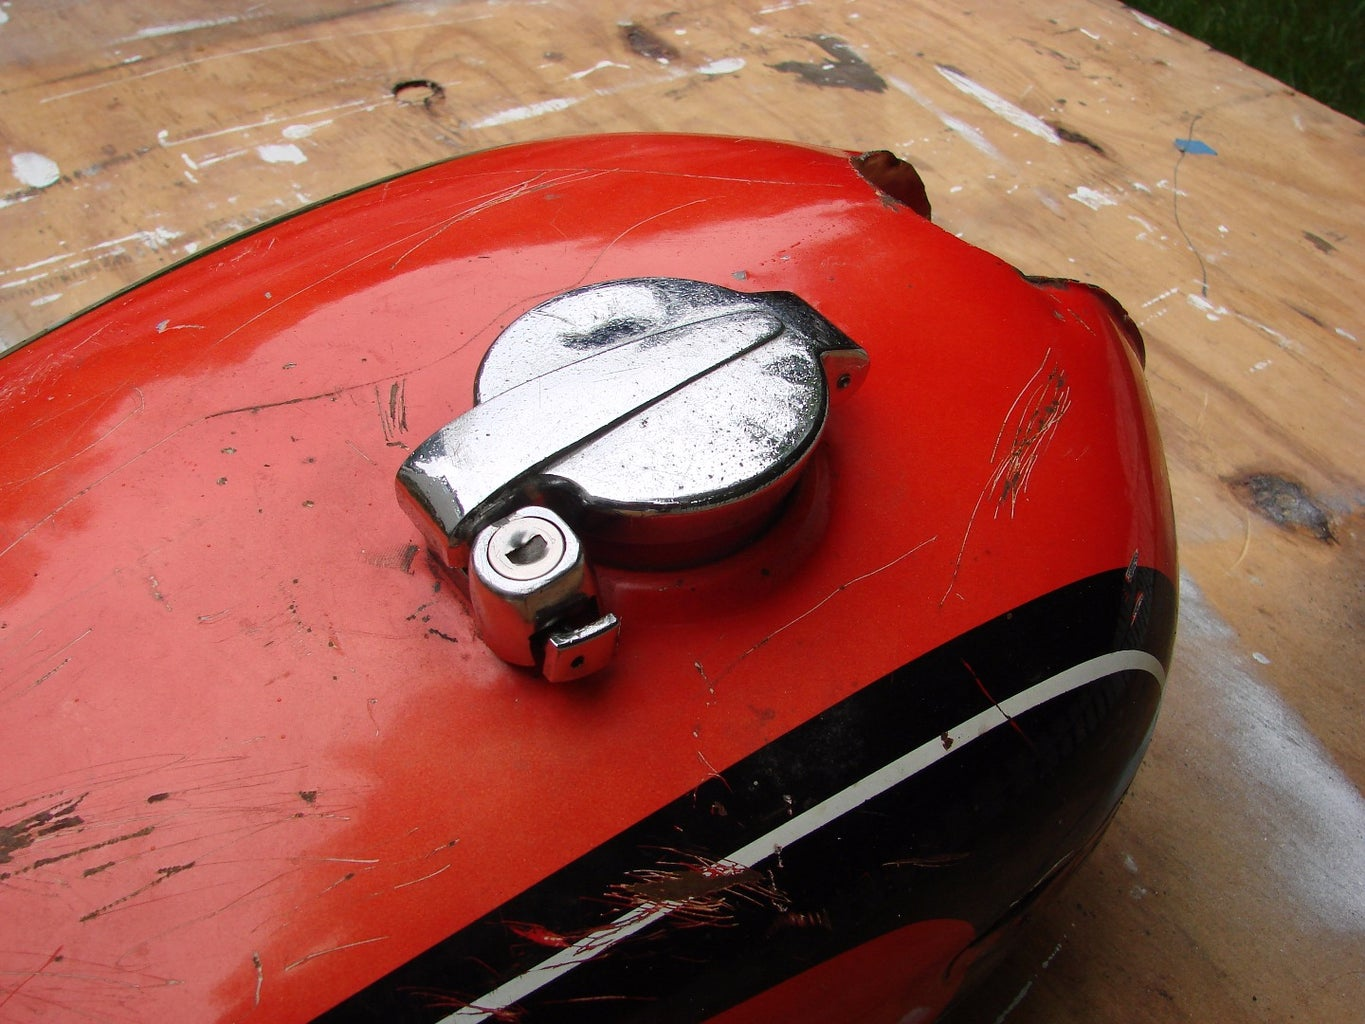 Removing the Old Gas Cap